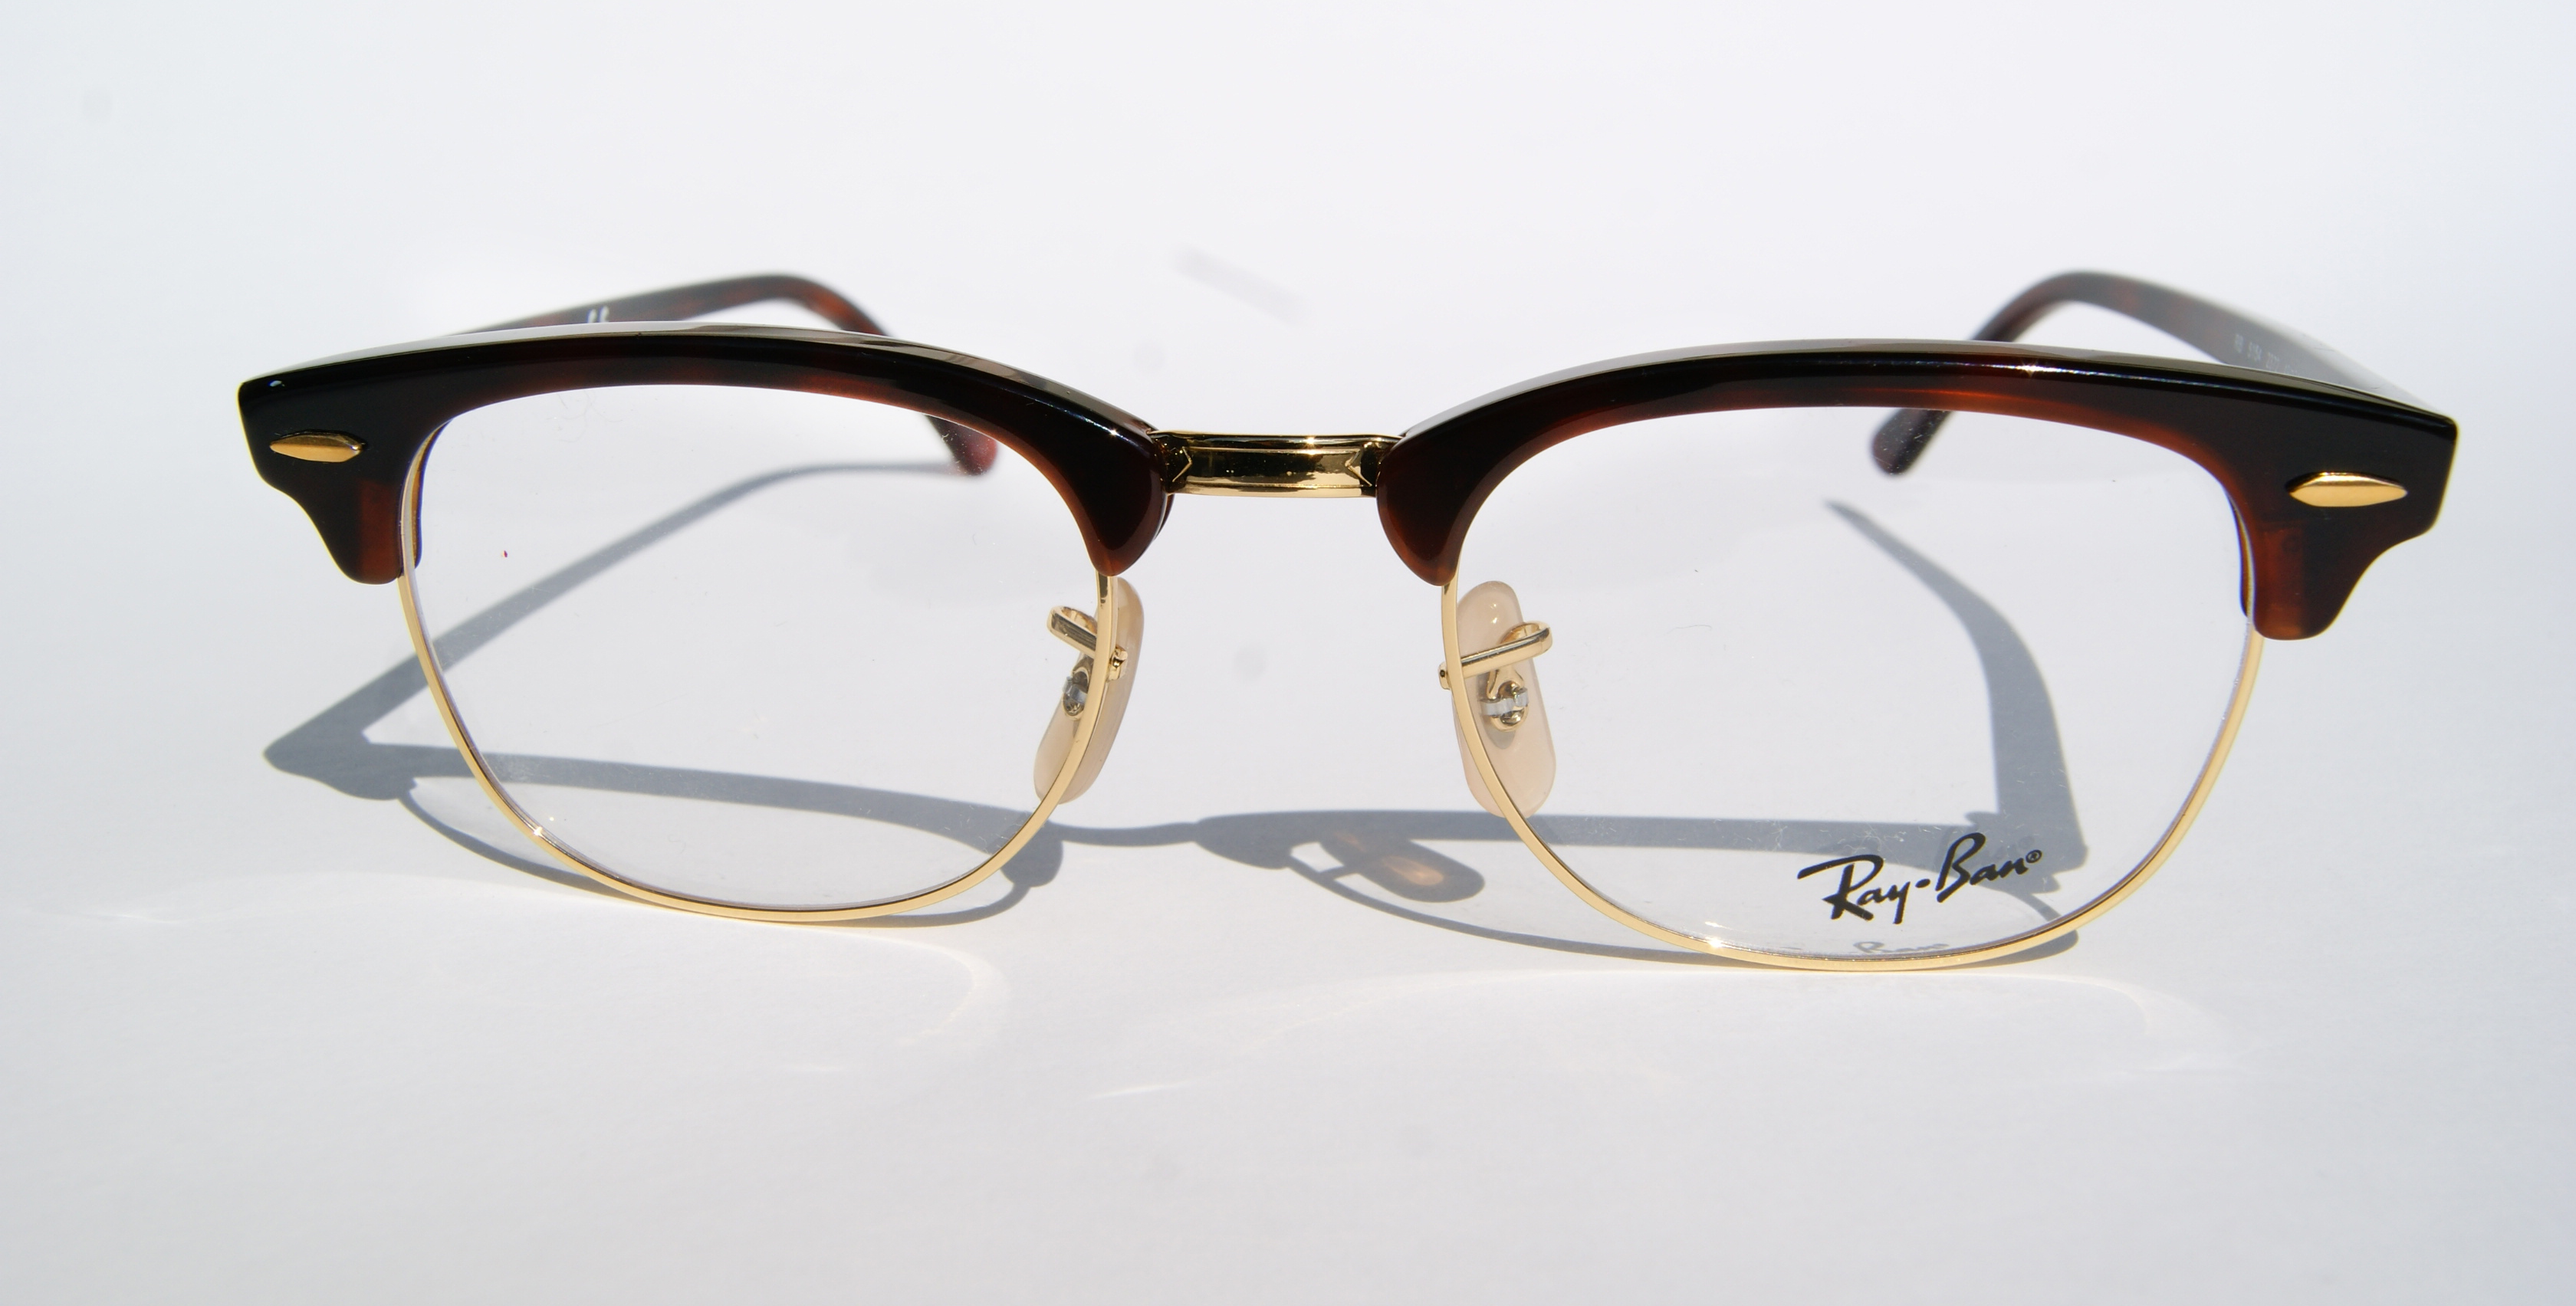 Ray Ban Nerd Glasses « Heritage Malta cd2911eb0da2